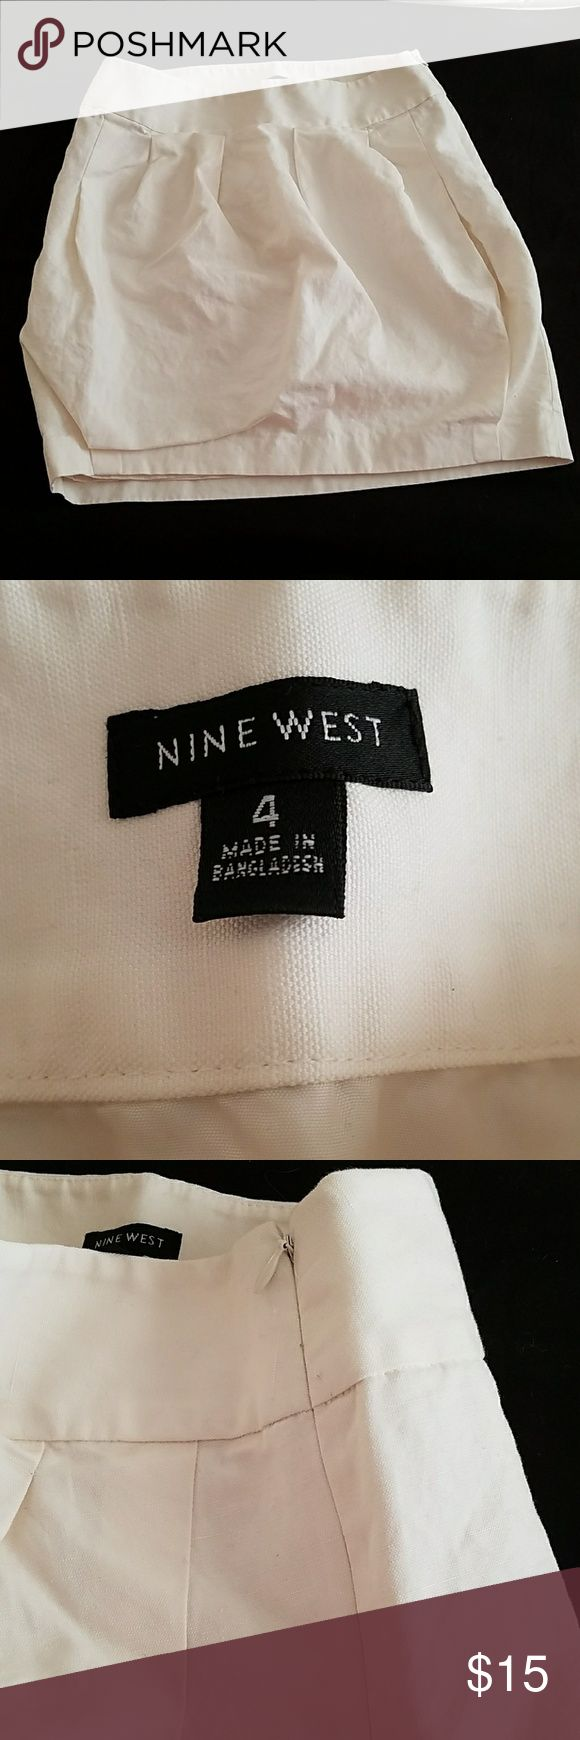 Nine West Ivory Skirt Beautiful size 4 Ivory Skirt. Nine West. Excellent condition. Just too short for me. Side zip. Has a lining. Linen and Cotton mix. About 18 inches in length. Great for work or play. 14 inches at top. 16.5 inches at waist. Nine West Skirts